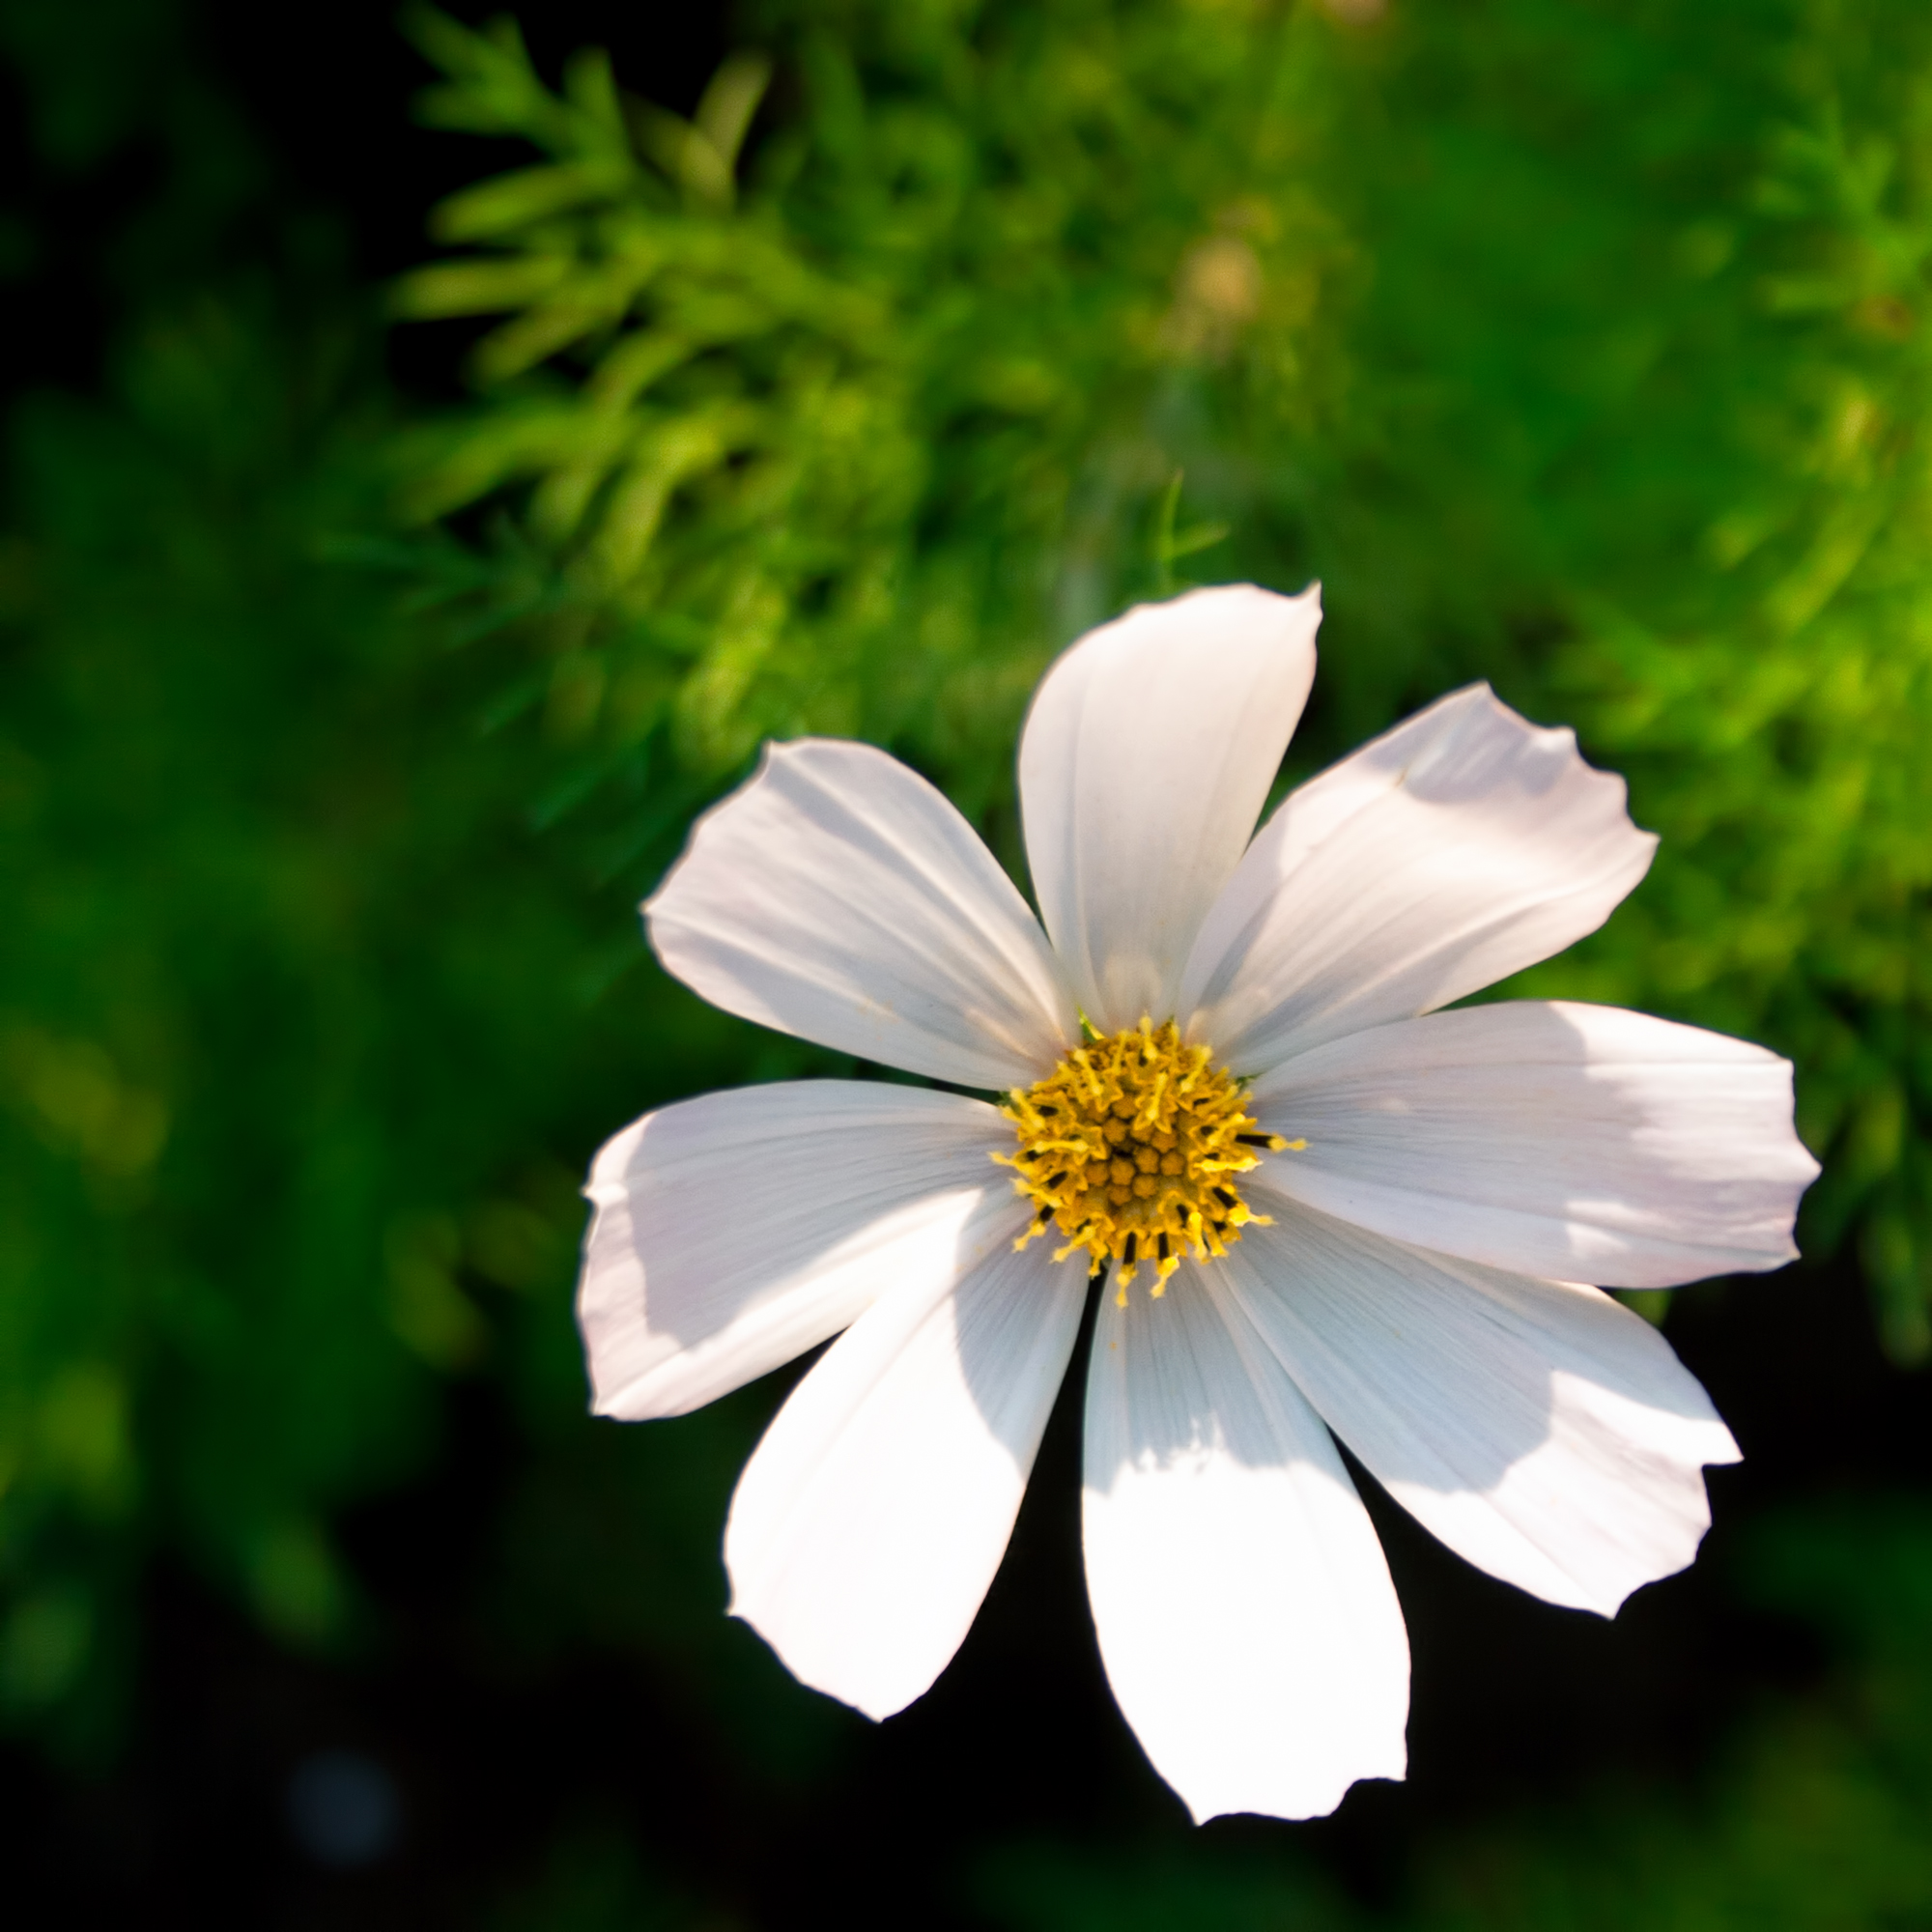 White flower, Bloom, Blooming, Blossom, Blurred, HQ Photo